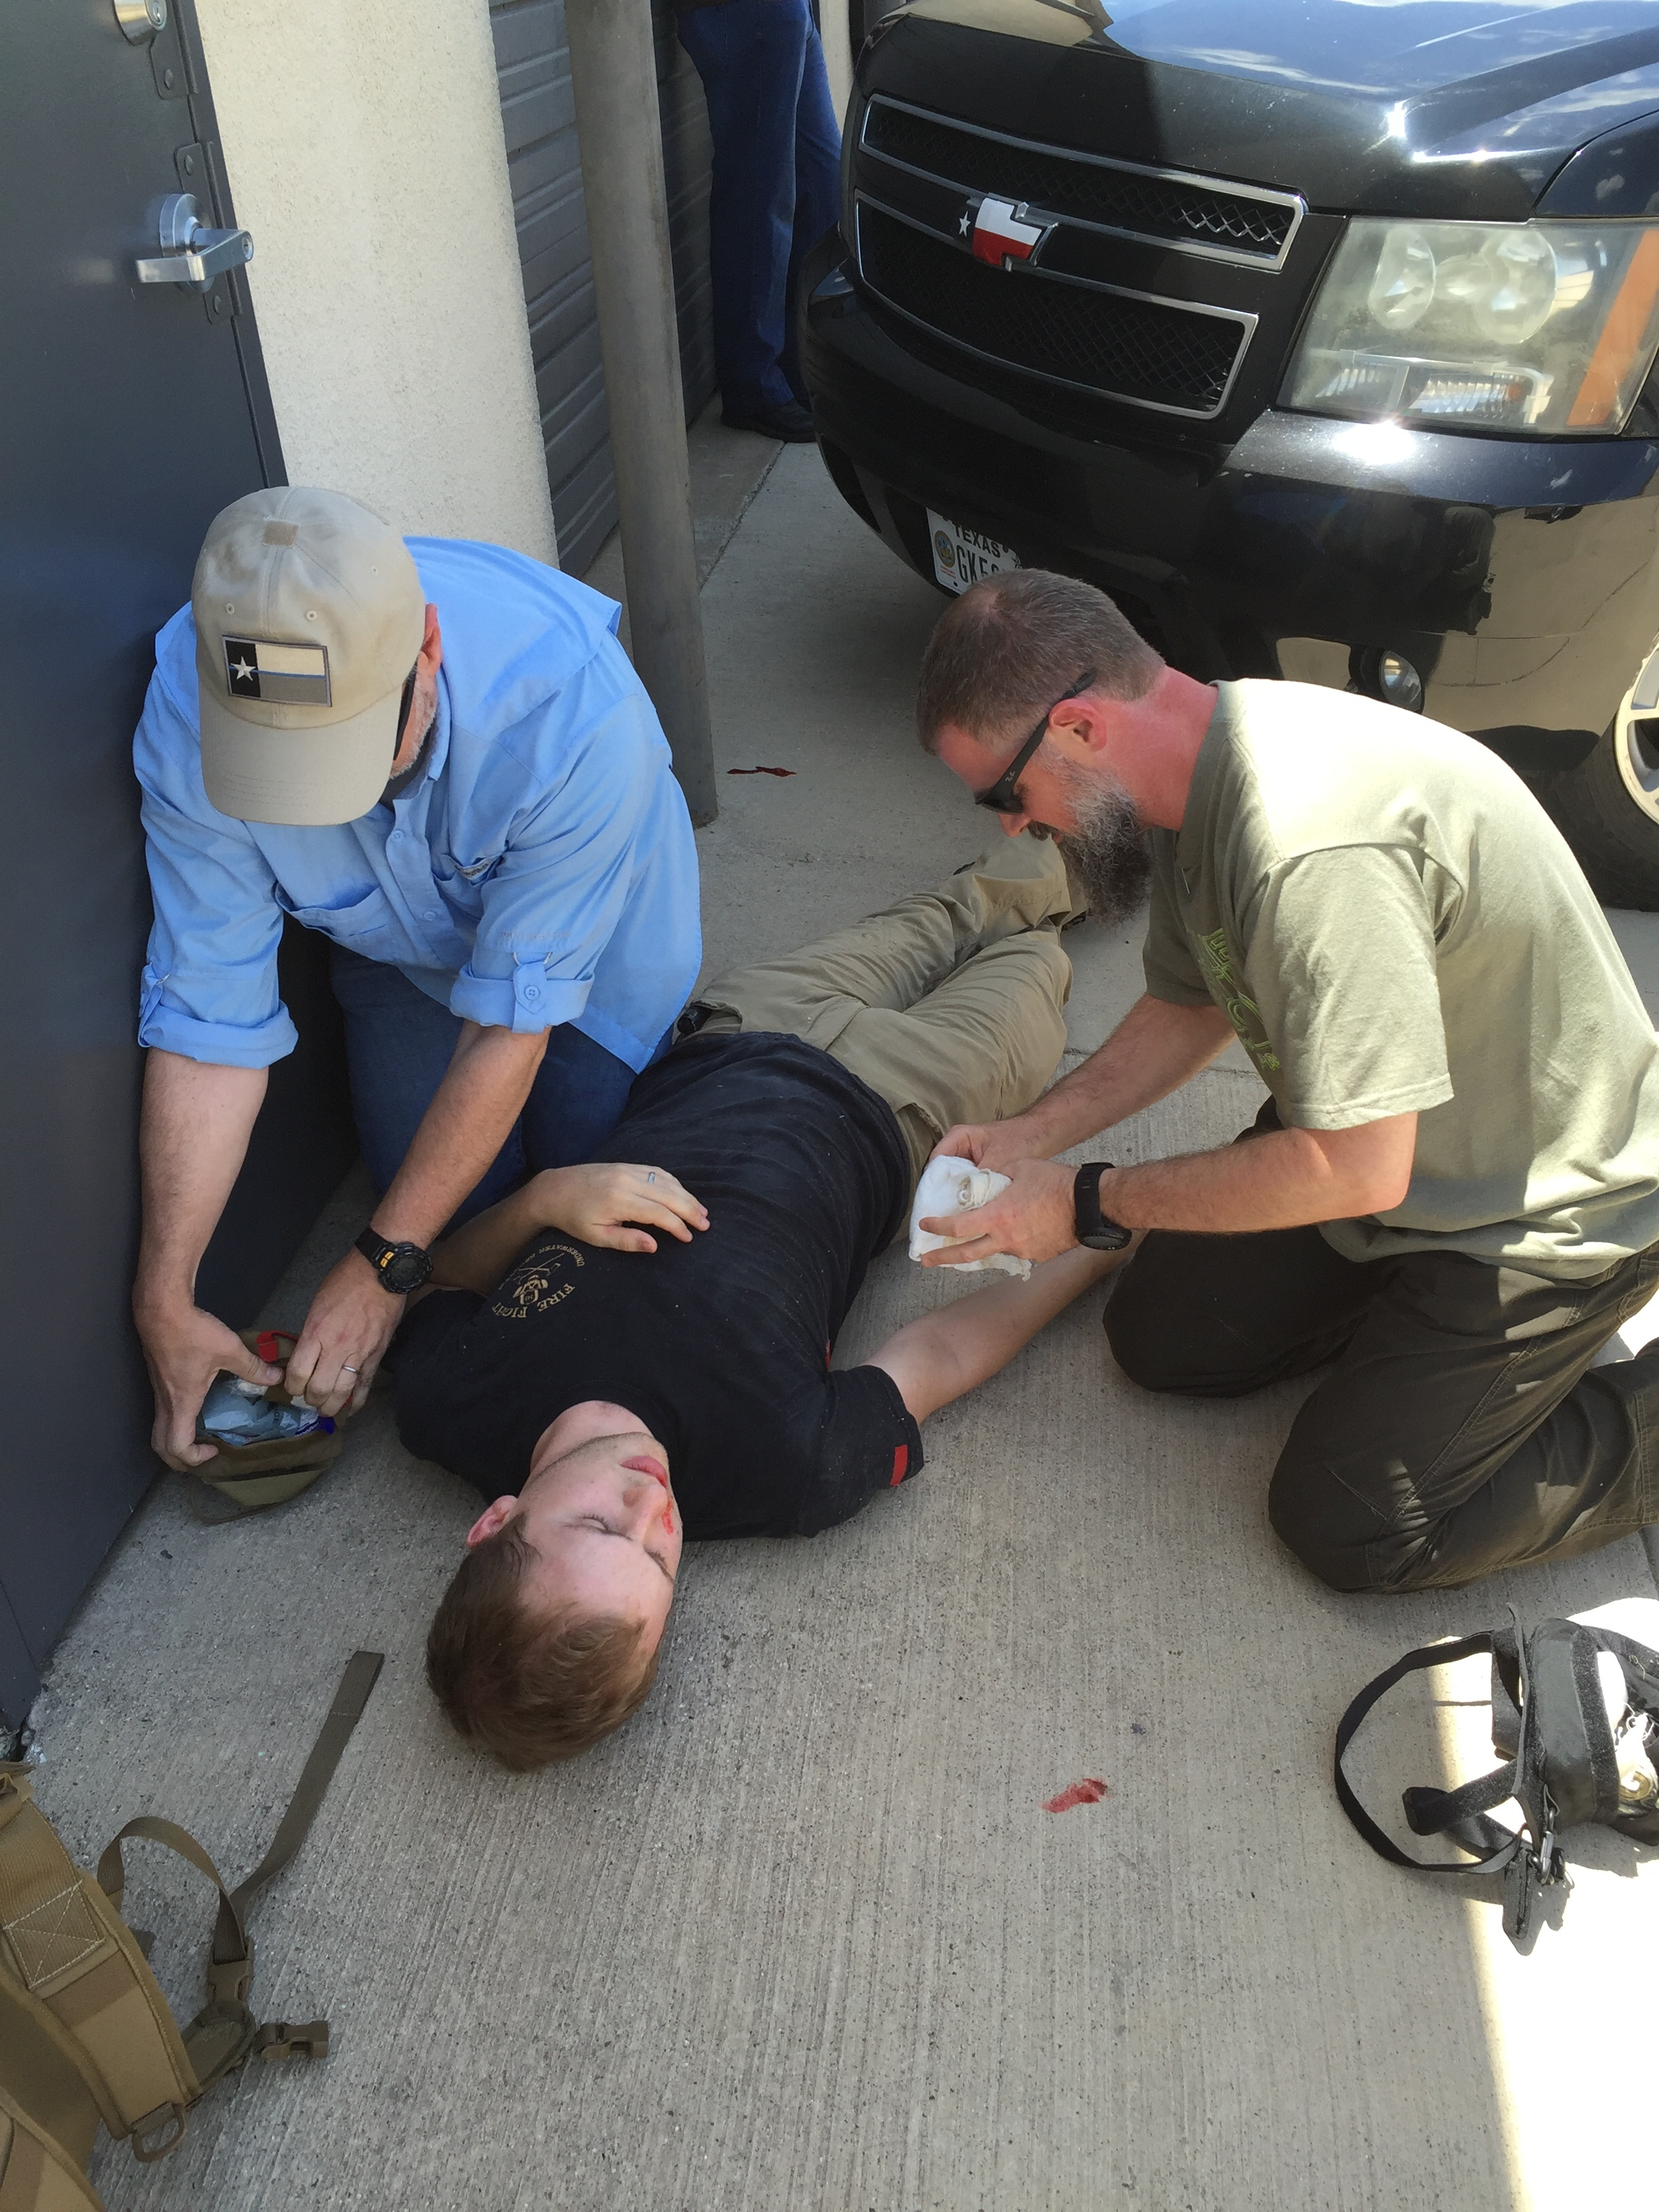 Learn by doing… - We utilize scenario-based training to help drive home the skills learned in class.